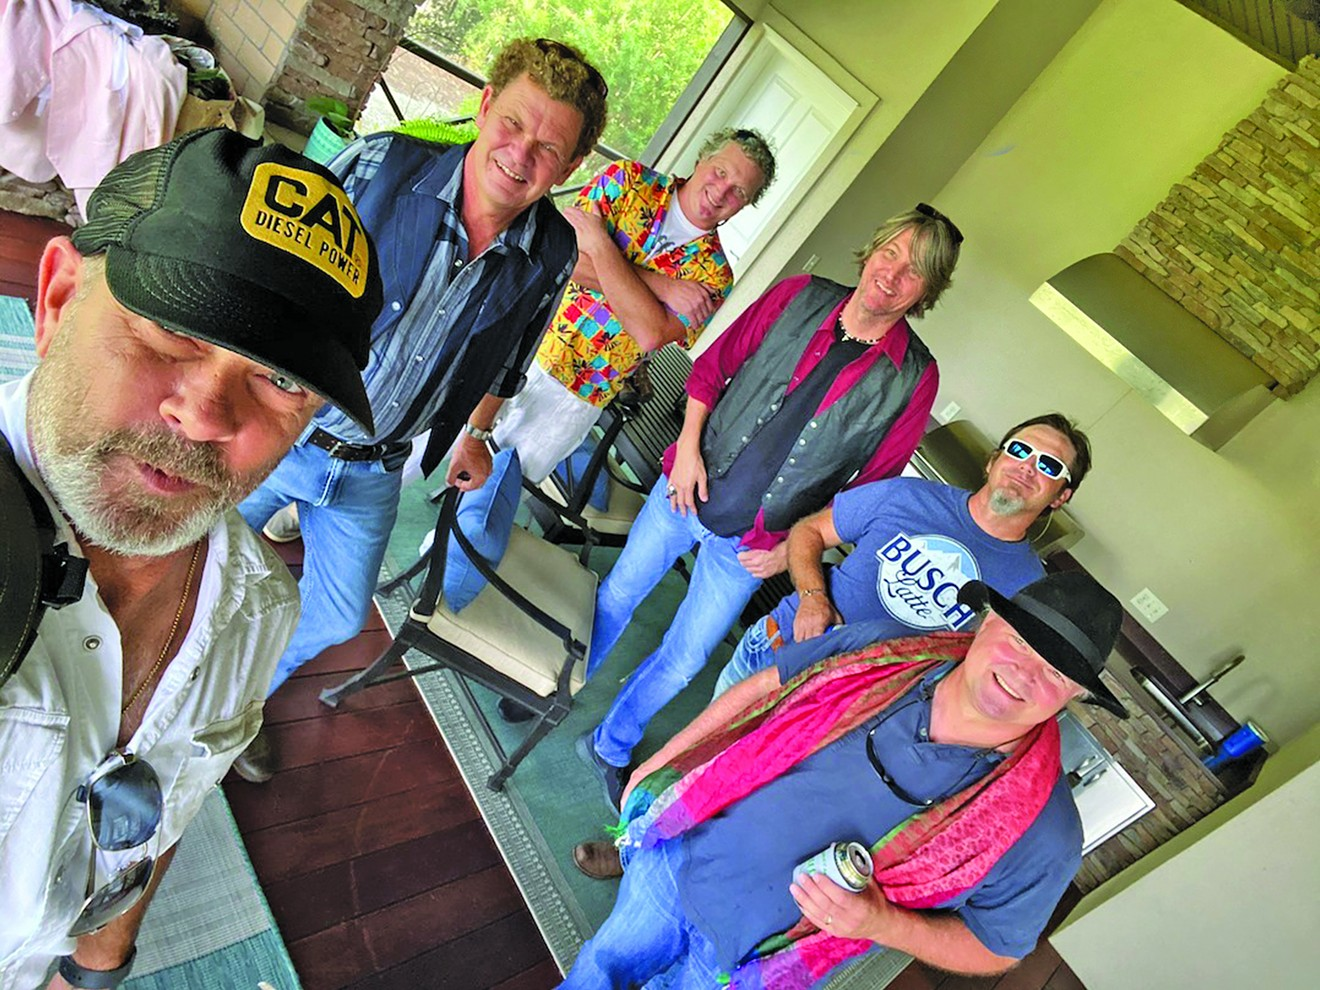 Members of Monkey Man: A Stones Band prepare for their upcoming concert at Starland Yard.